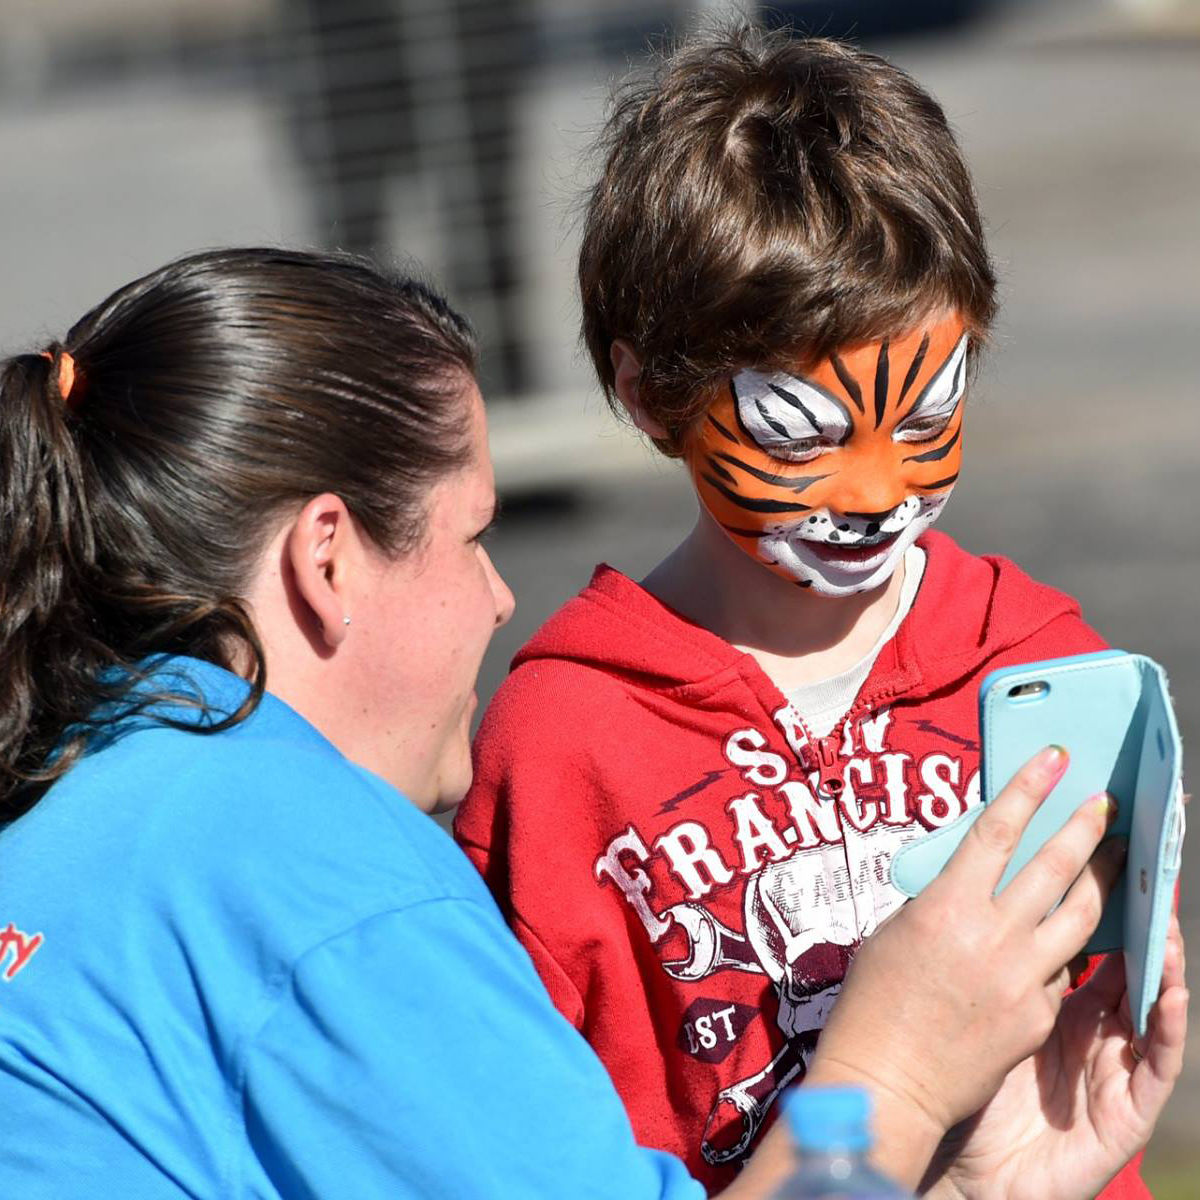 Horsham Cup Kids Face Painting Activity